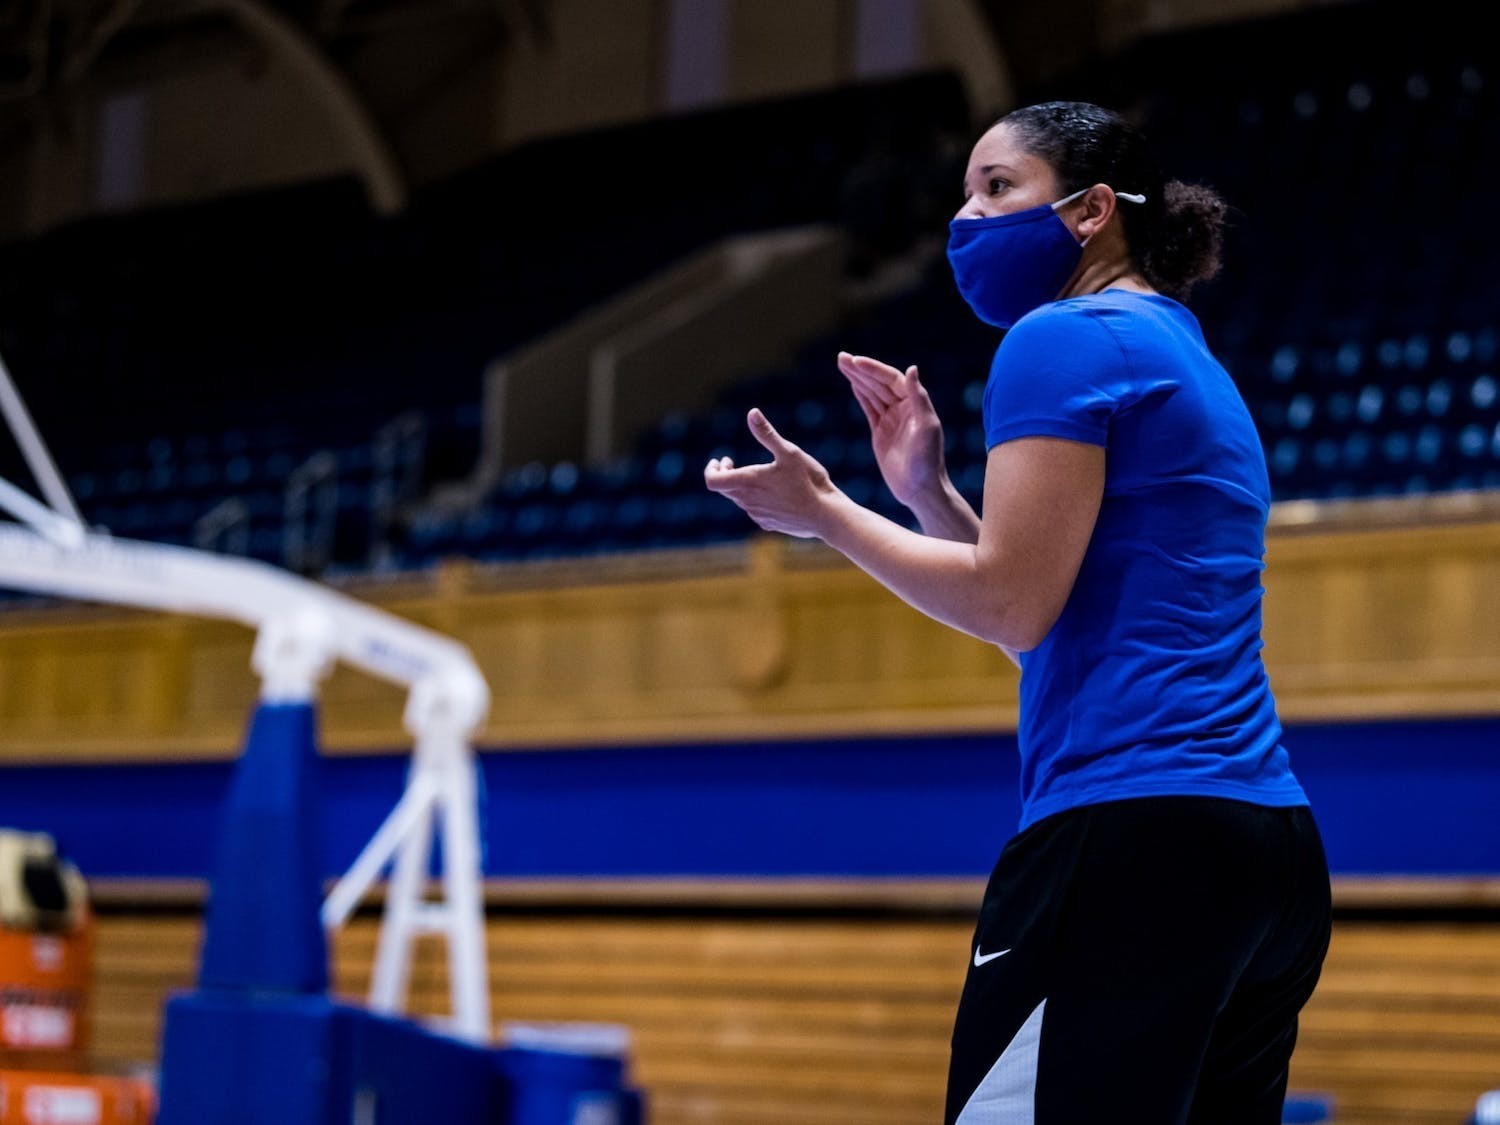 Several incoming transfers look to bring their skills to make the Blue Devils a contender in 2021-22.